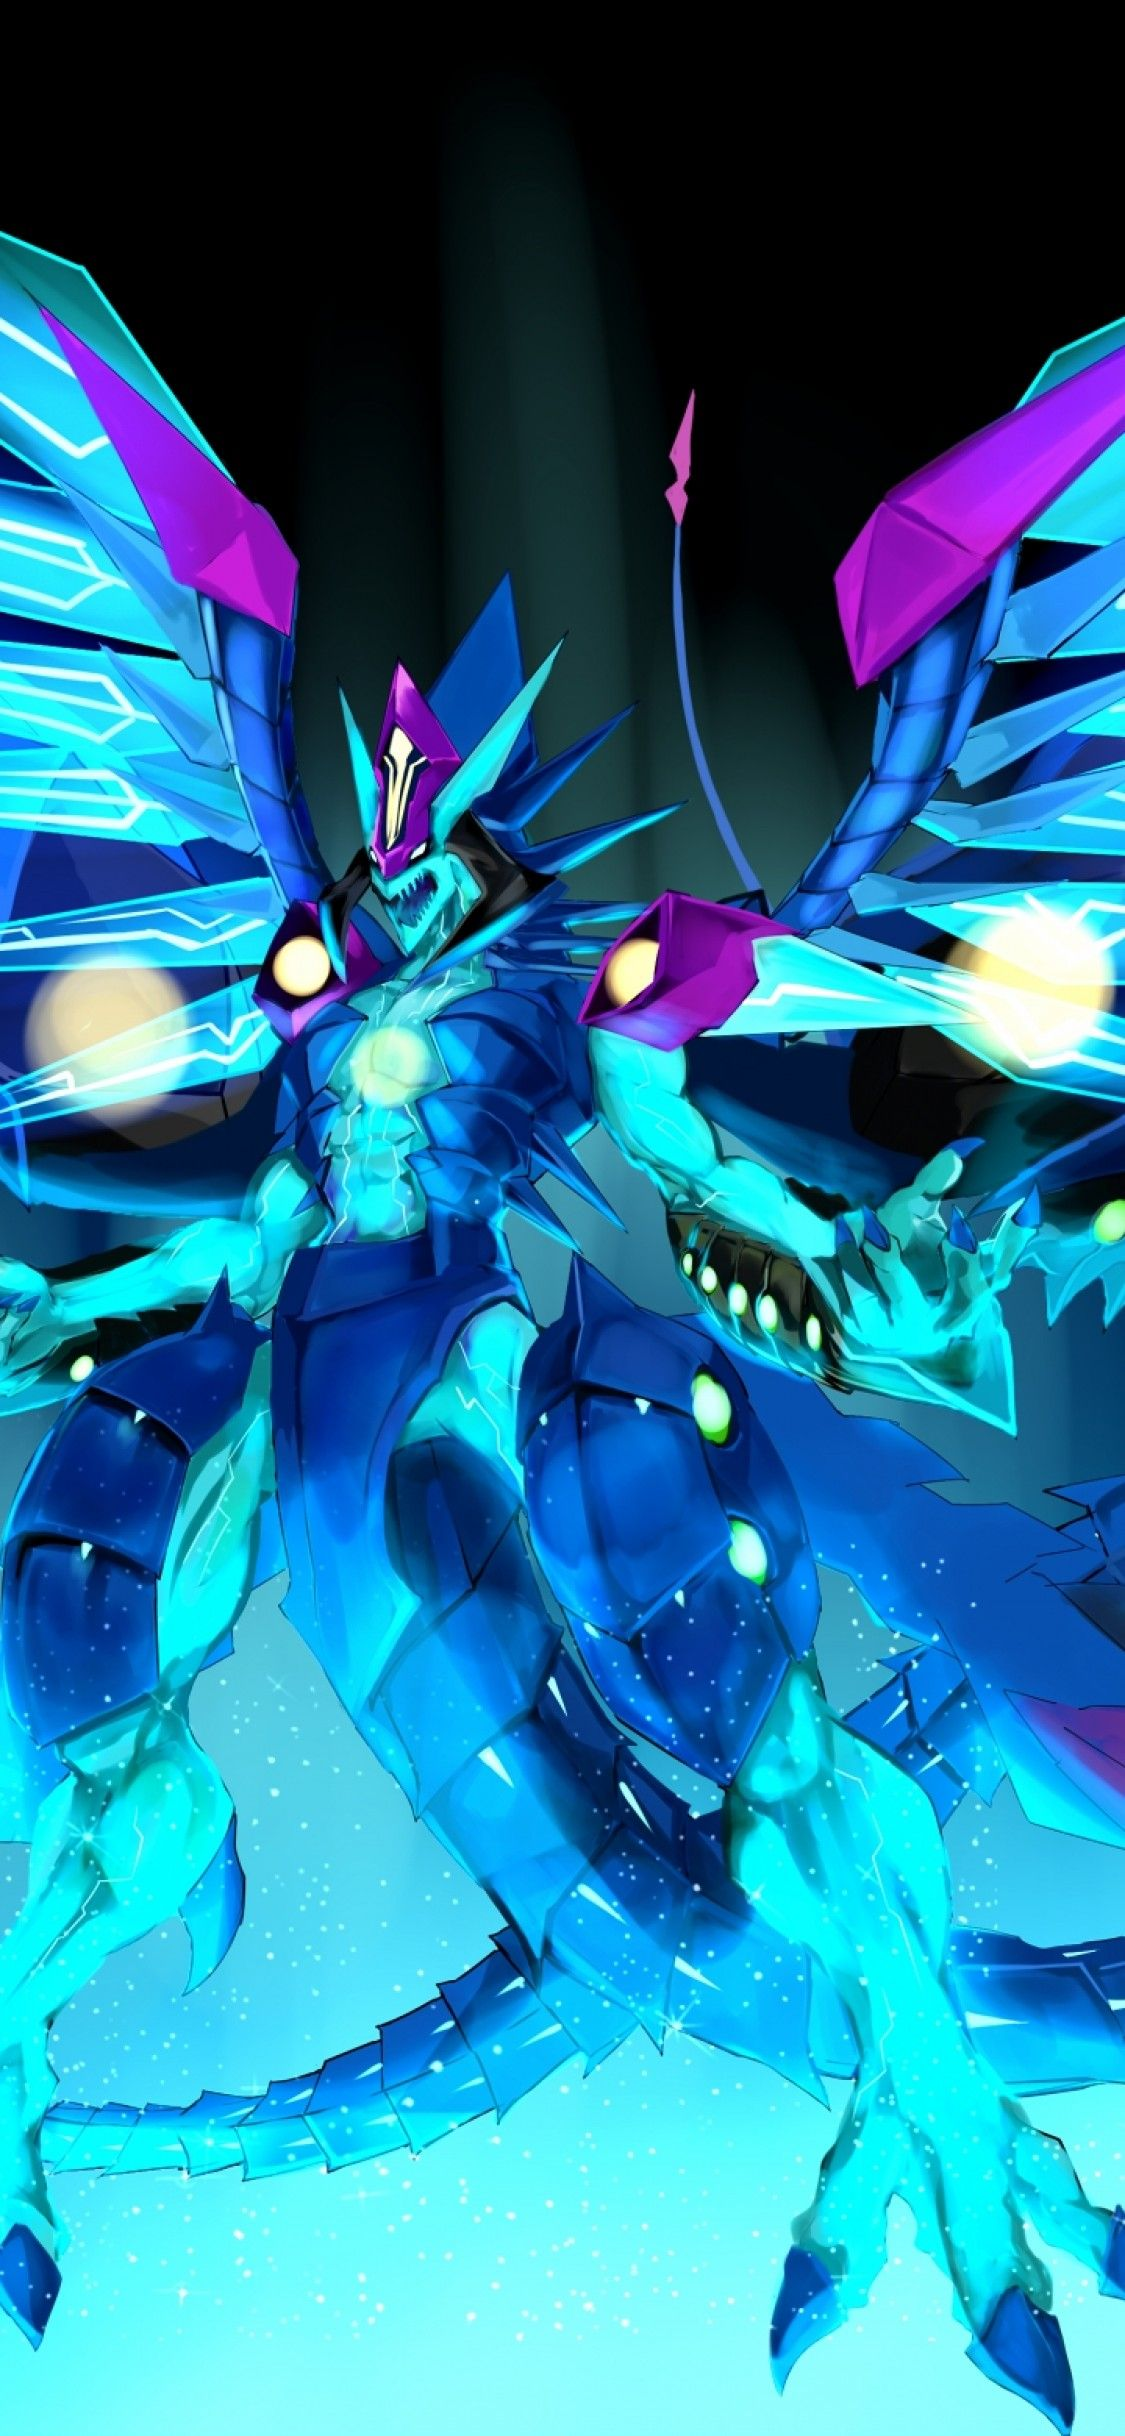 1125x2436 Download 1125x2436 Yu-gi-oh! Zexal, Galaxy Eyes Prime Photon Dragon ...